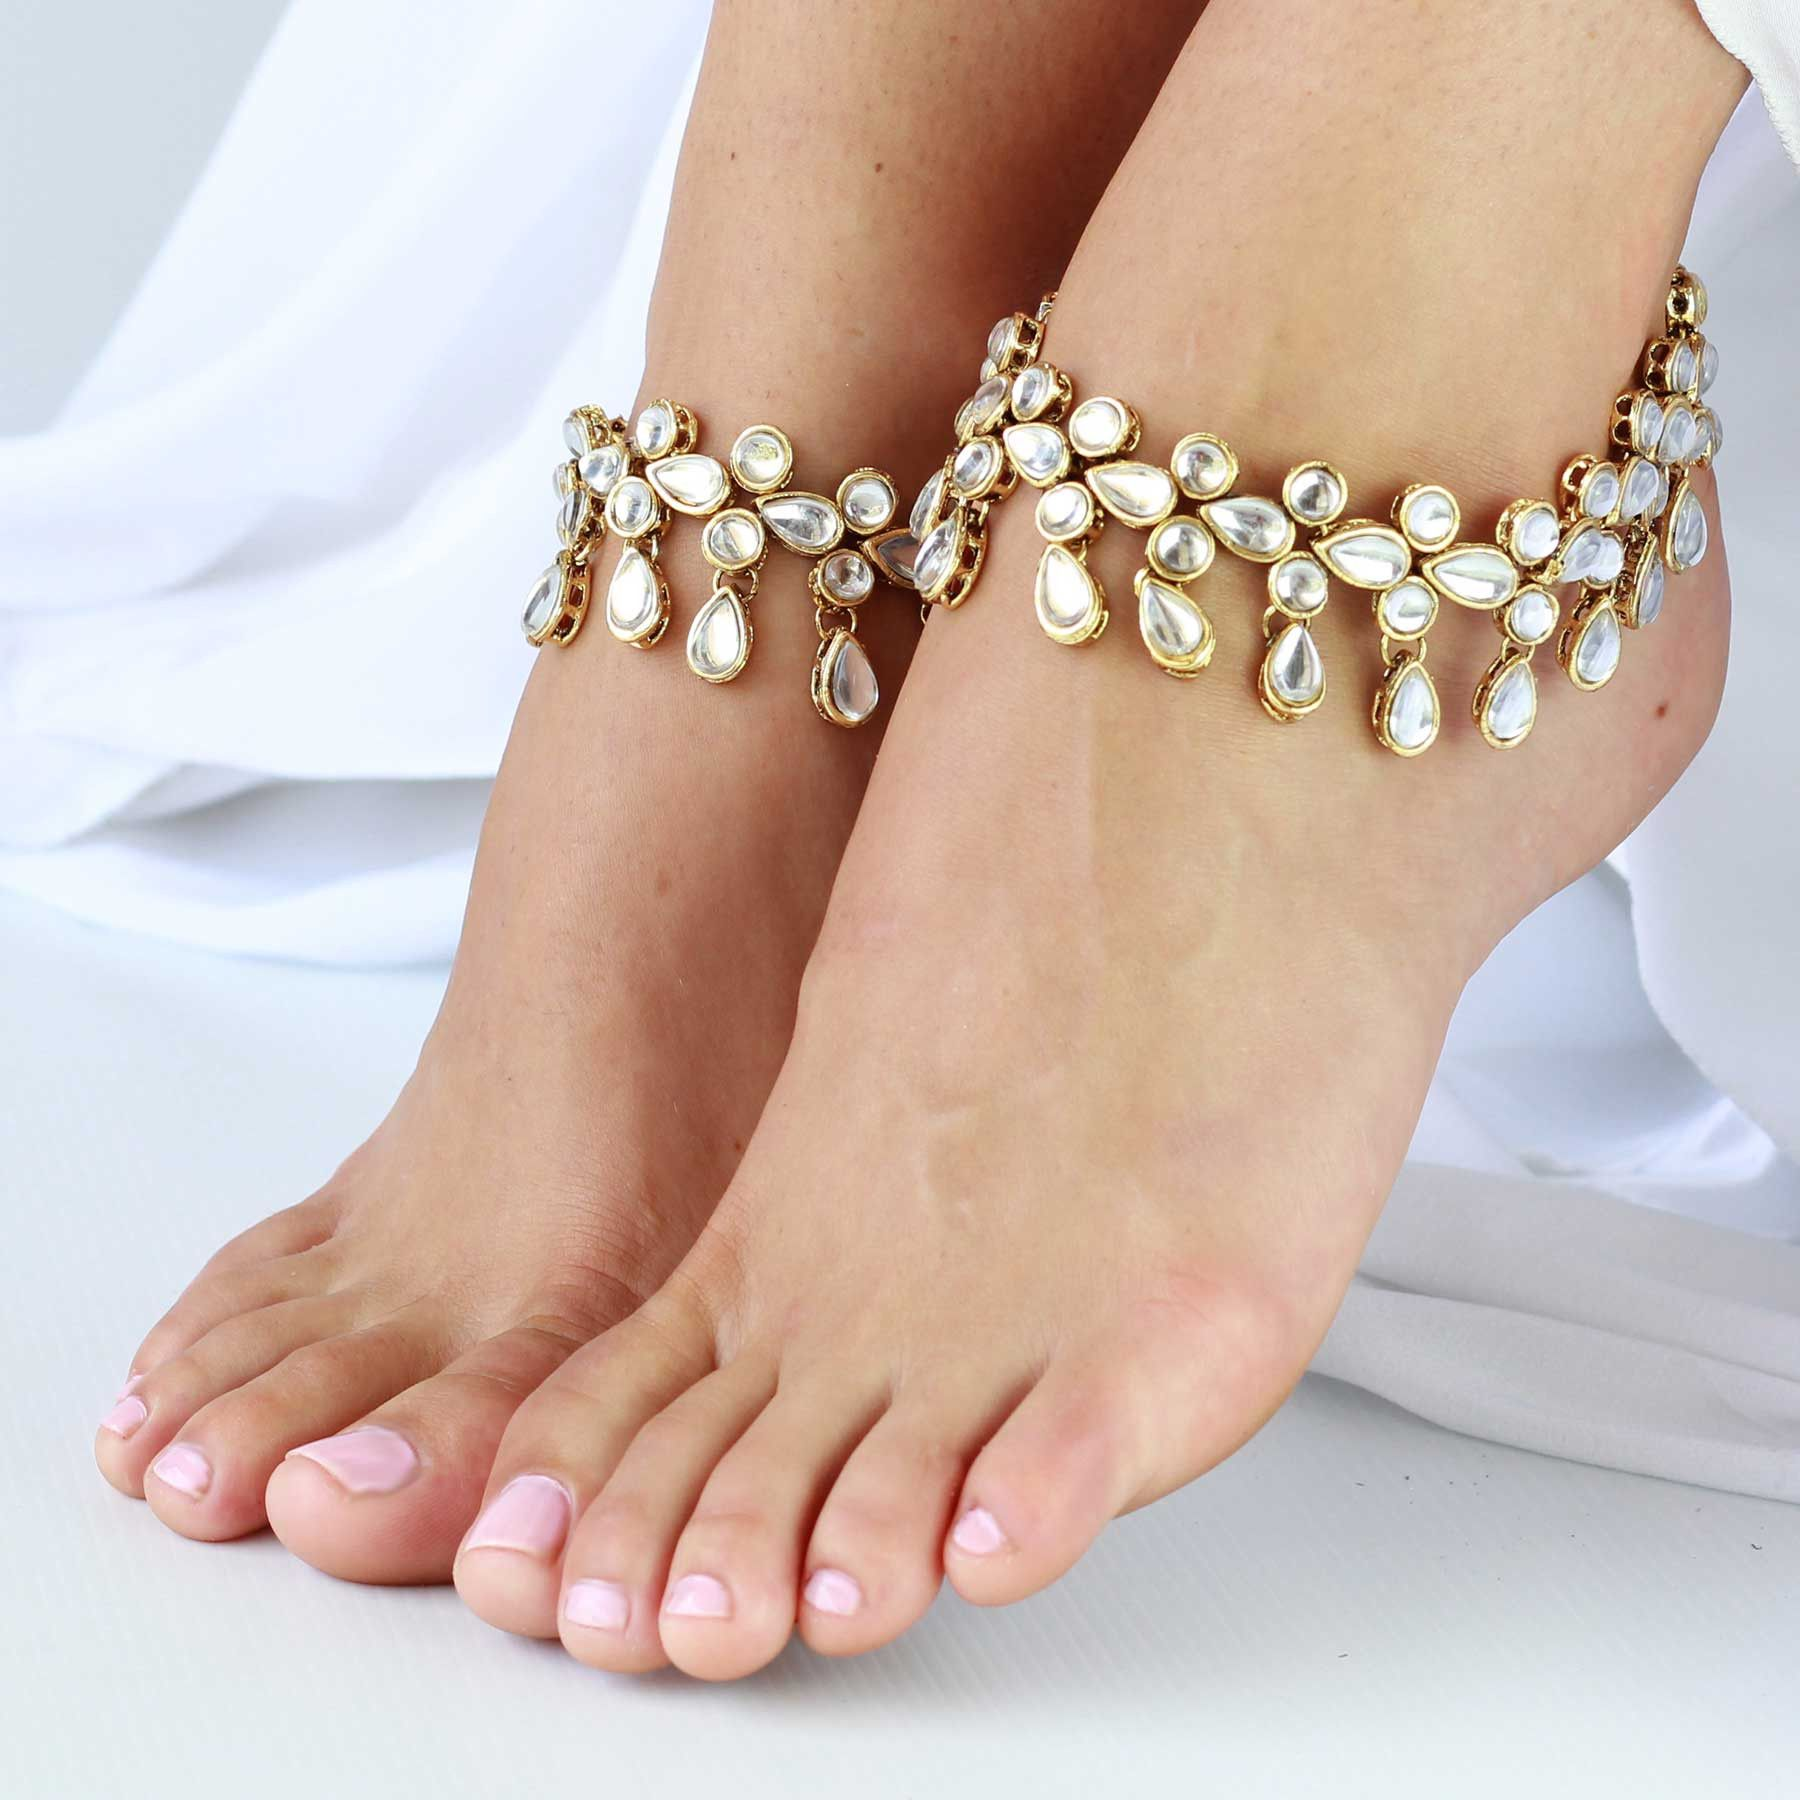 jewelry shoes forever by soles wedding chara boho anklet bridal pin